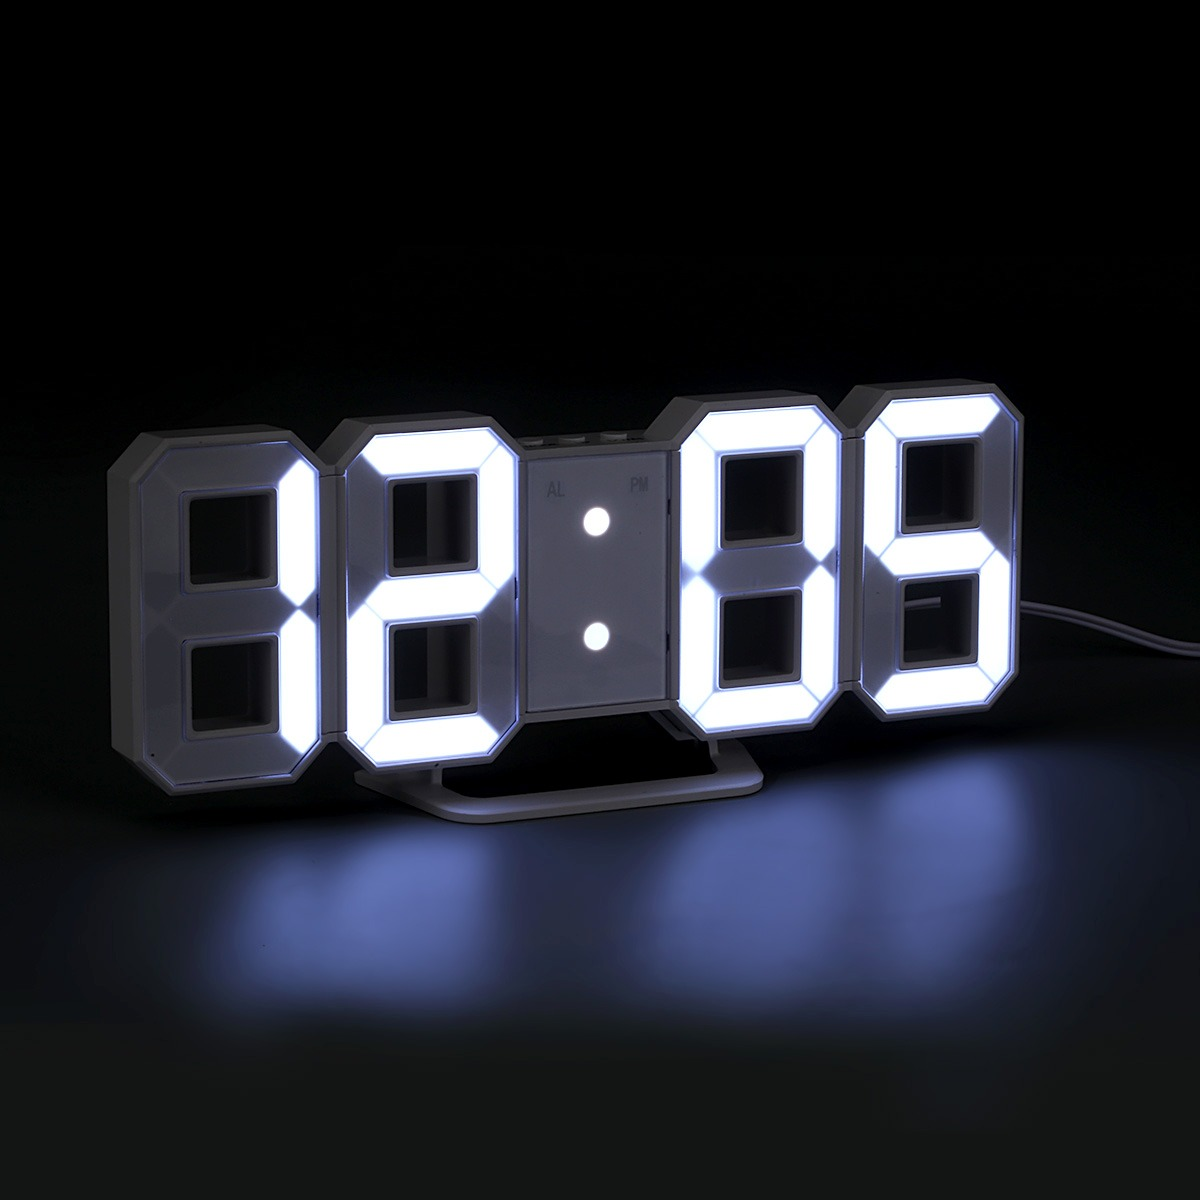 00177e3dd20e Reloj De Pared Blanco Digital Números Digital Led Con 3 Niv ...